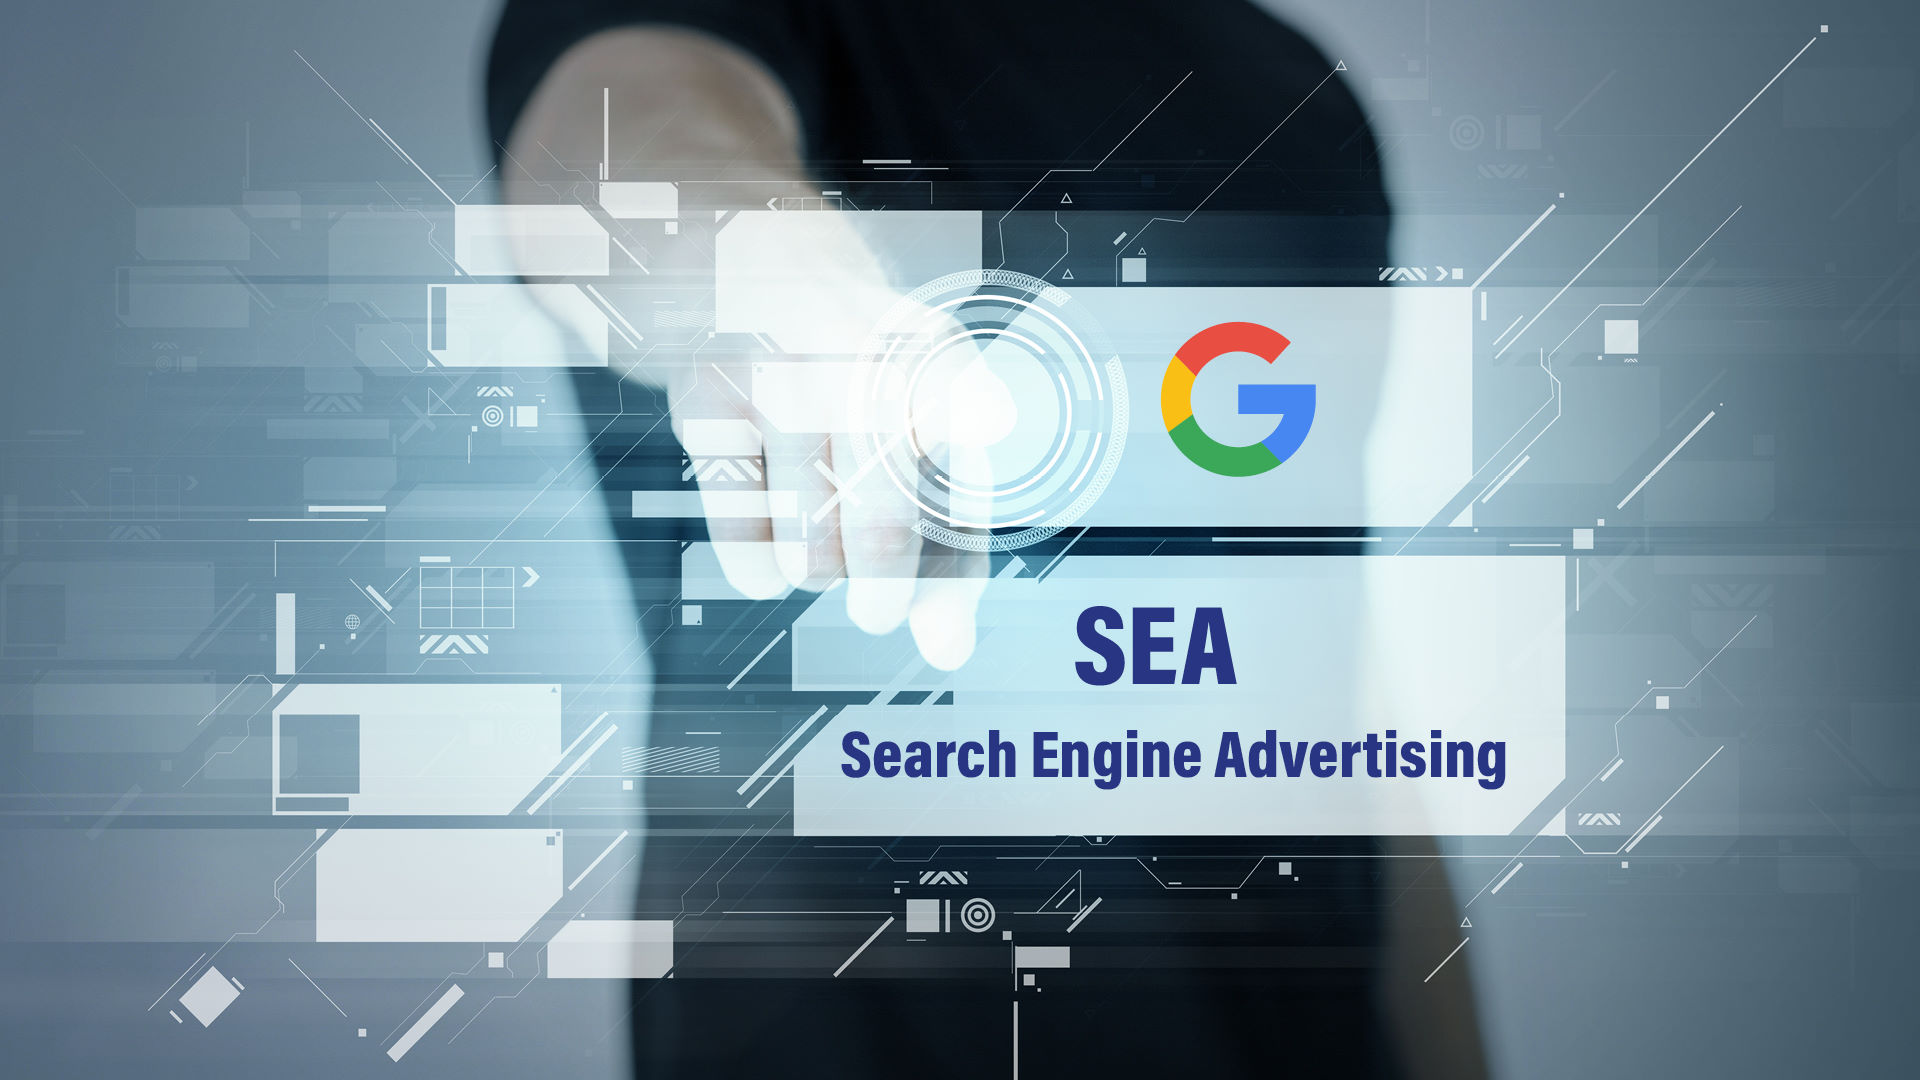 Google SEA_Advertising Solution_Werbeagentur Bezirk Mödling